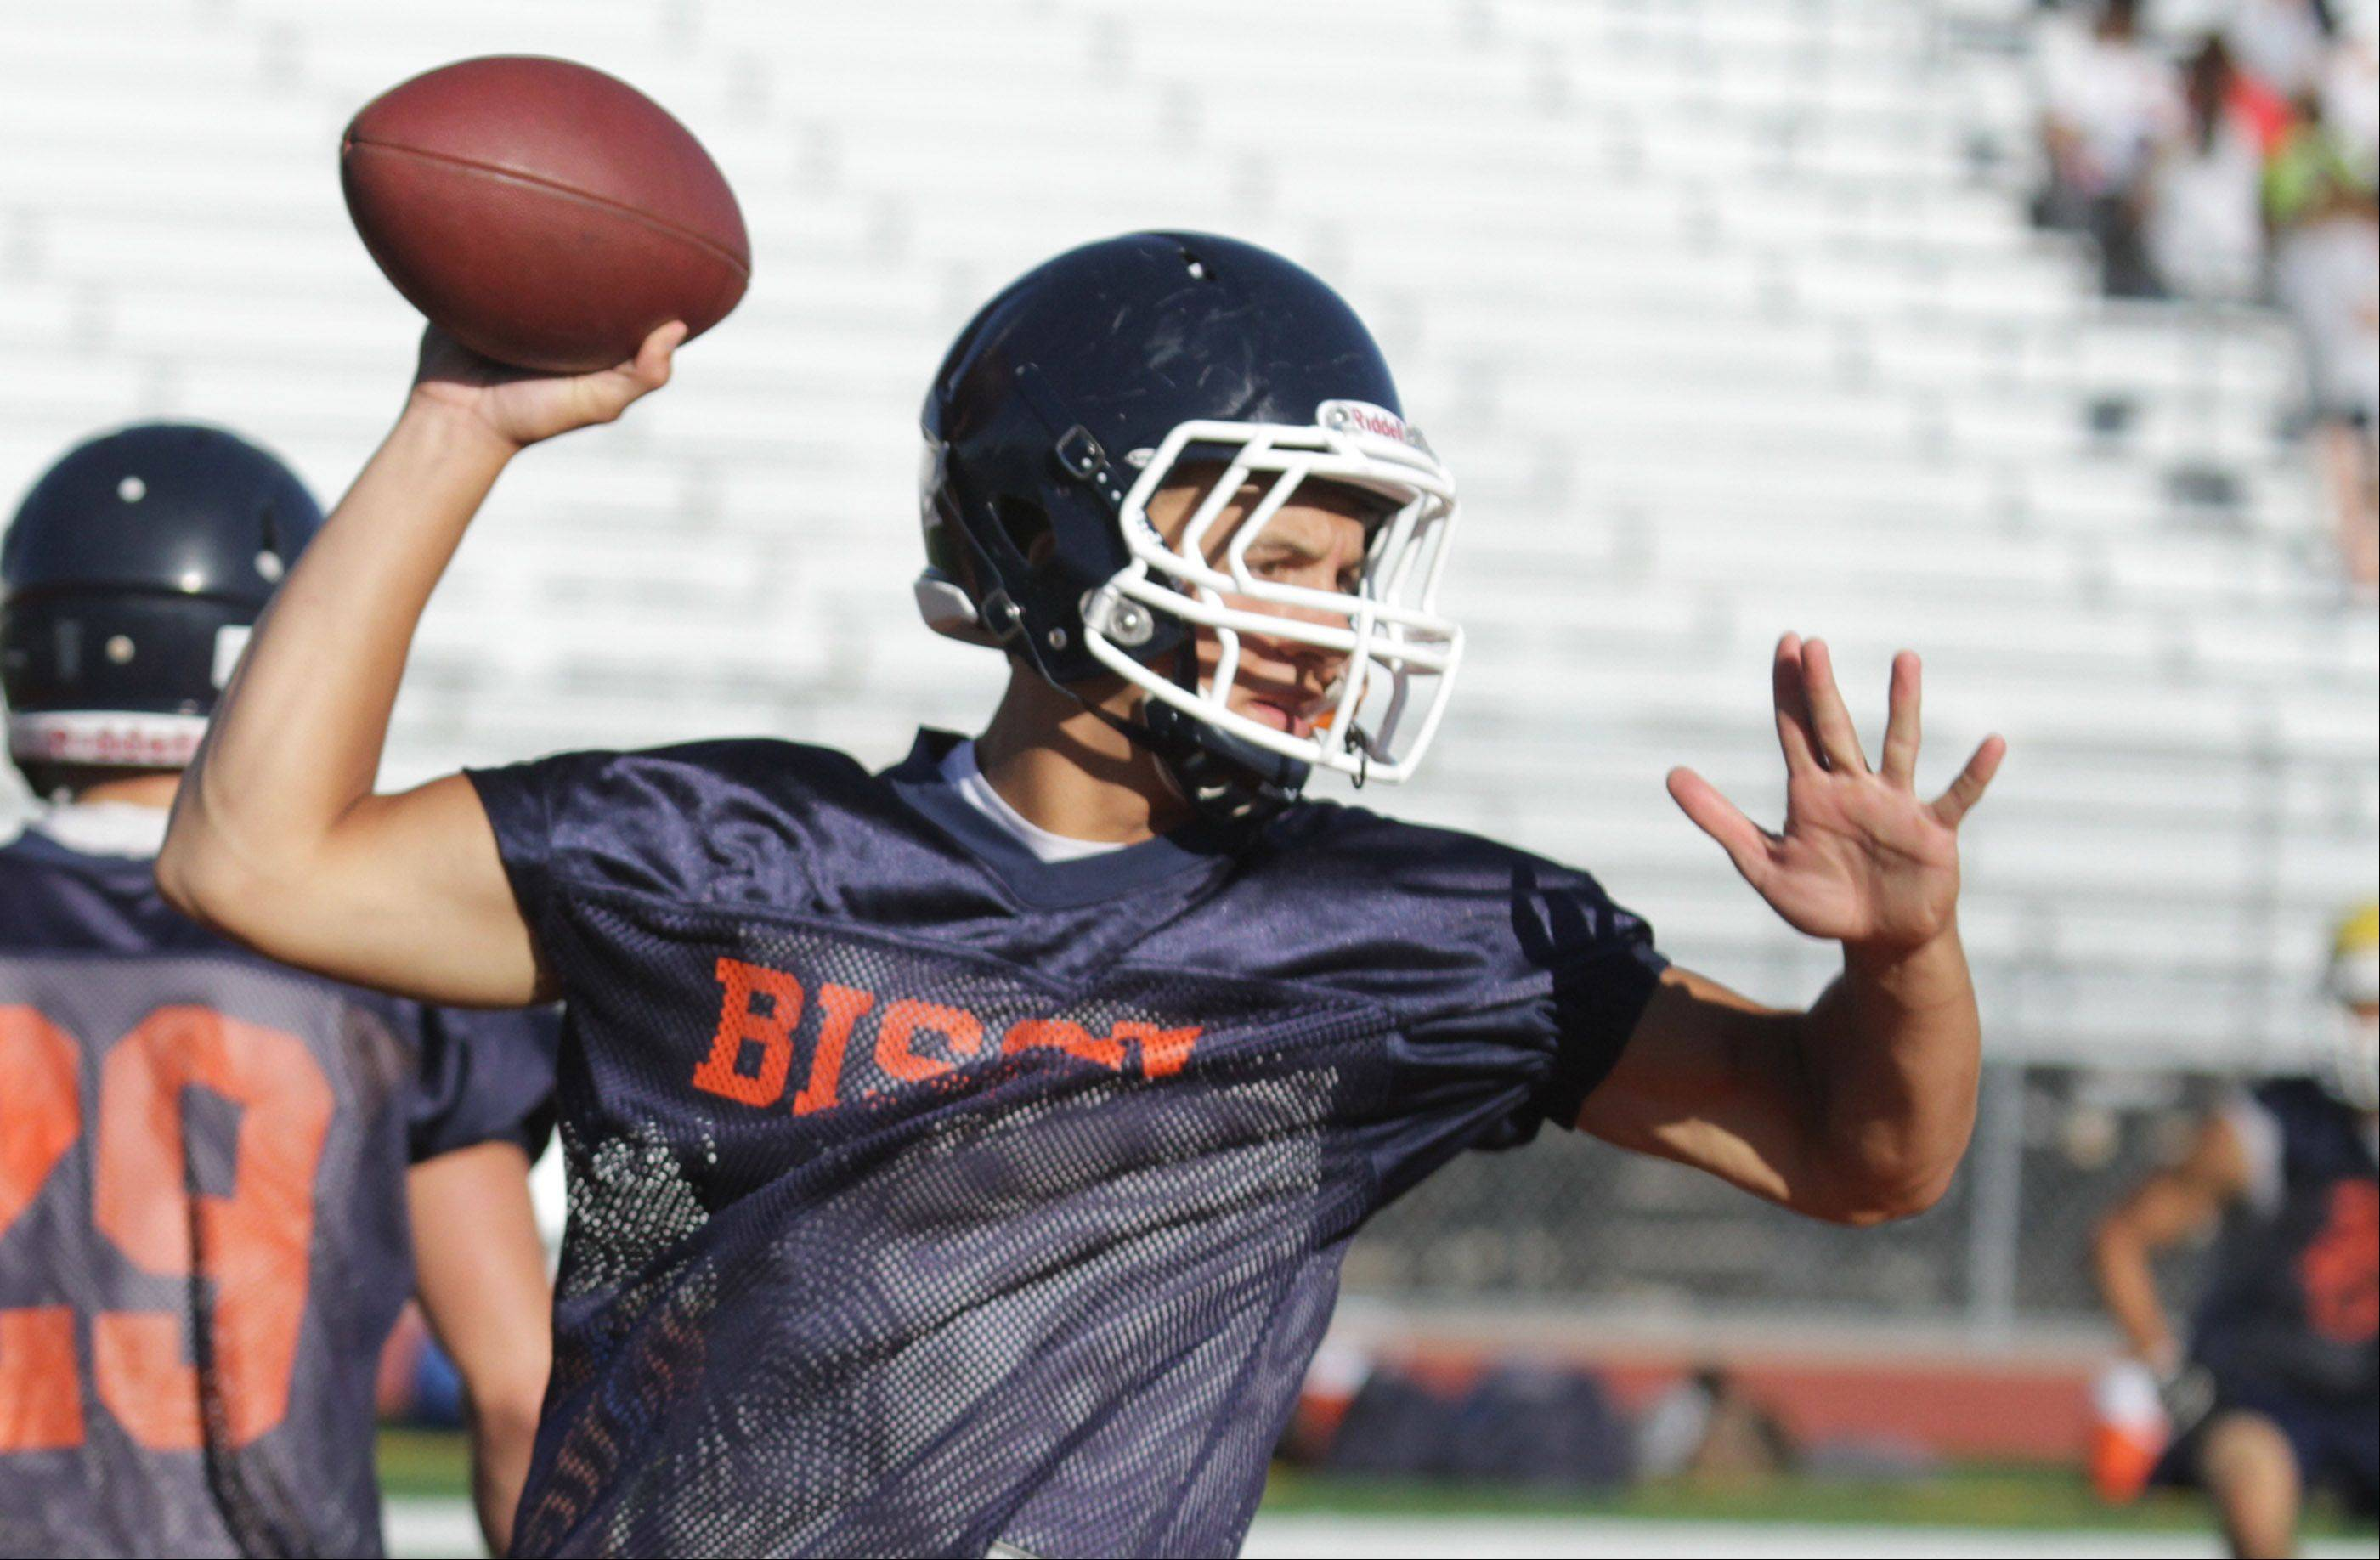 Buffalo Grove High School starting quarterback Andrew Apel passes the during the first day of practice on Wednesday, August 14, 2013.